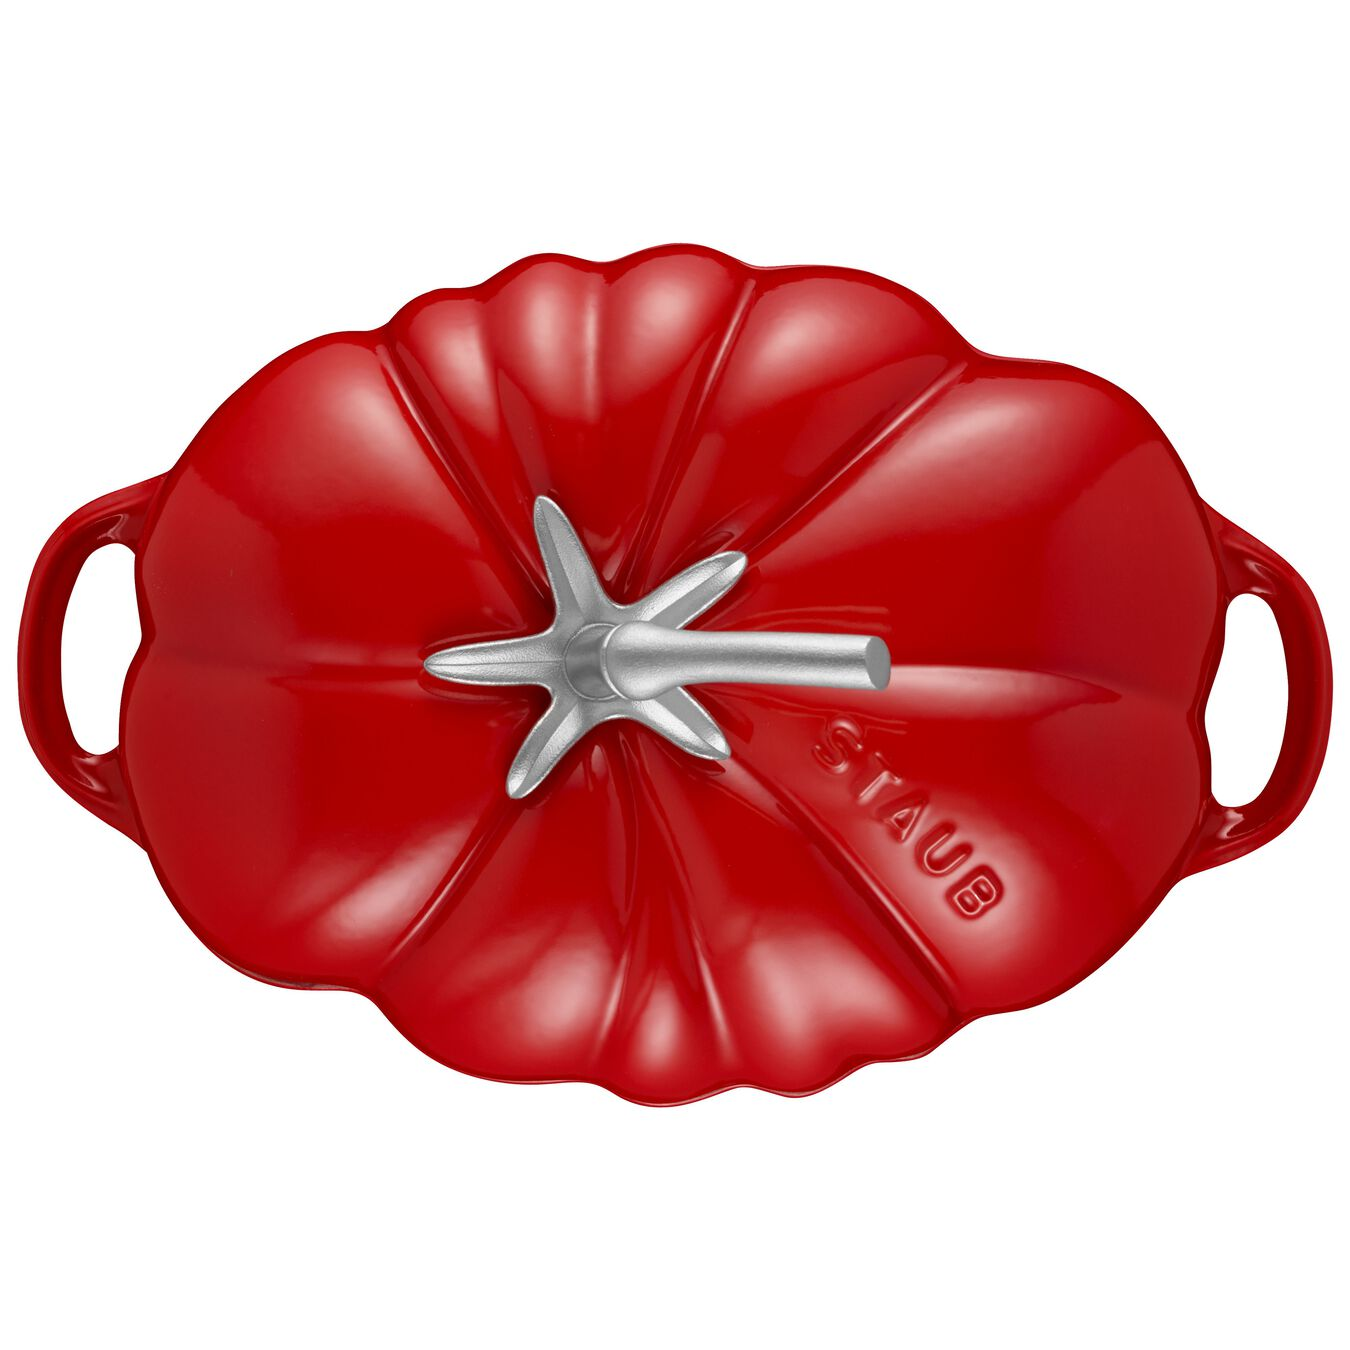 Cocotte 25 cm, Tomate, Kirsch-Rot, Gusseisen,,large 4